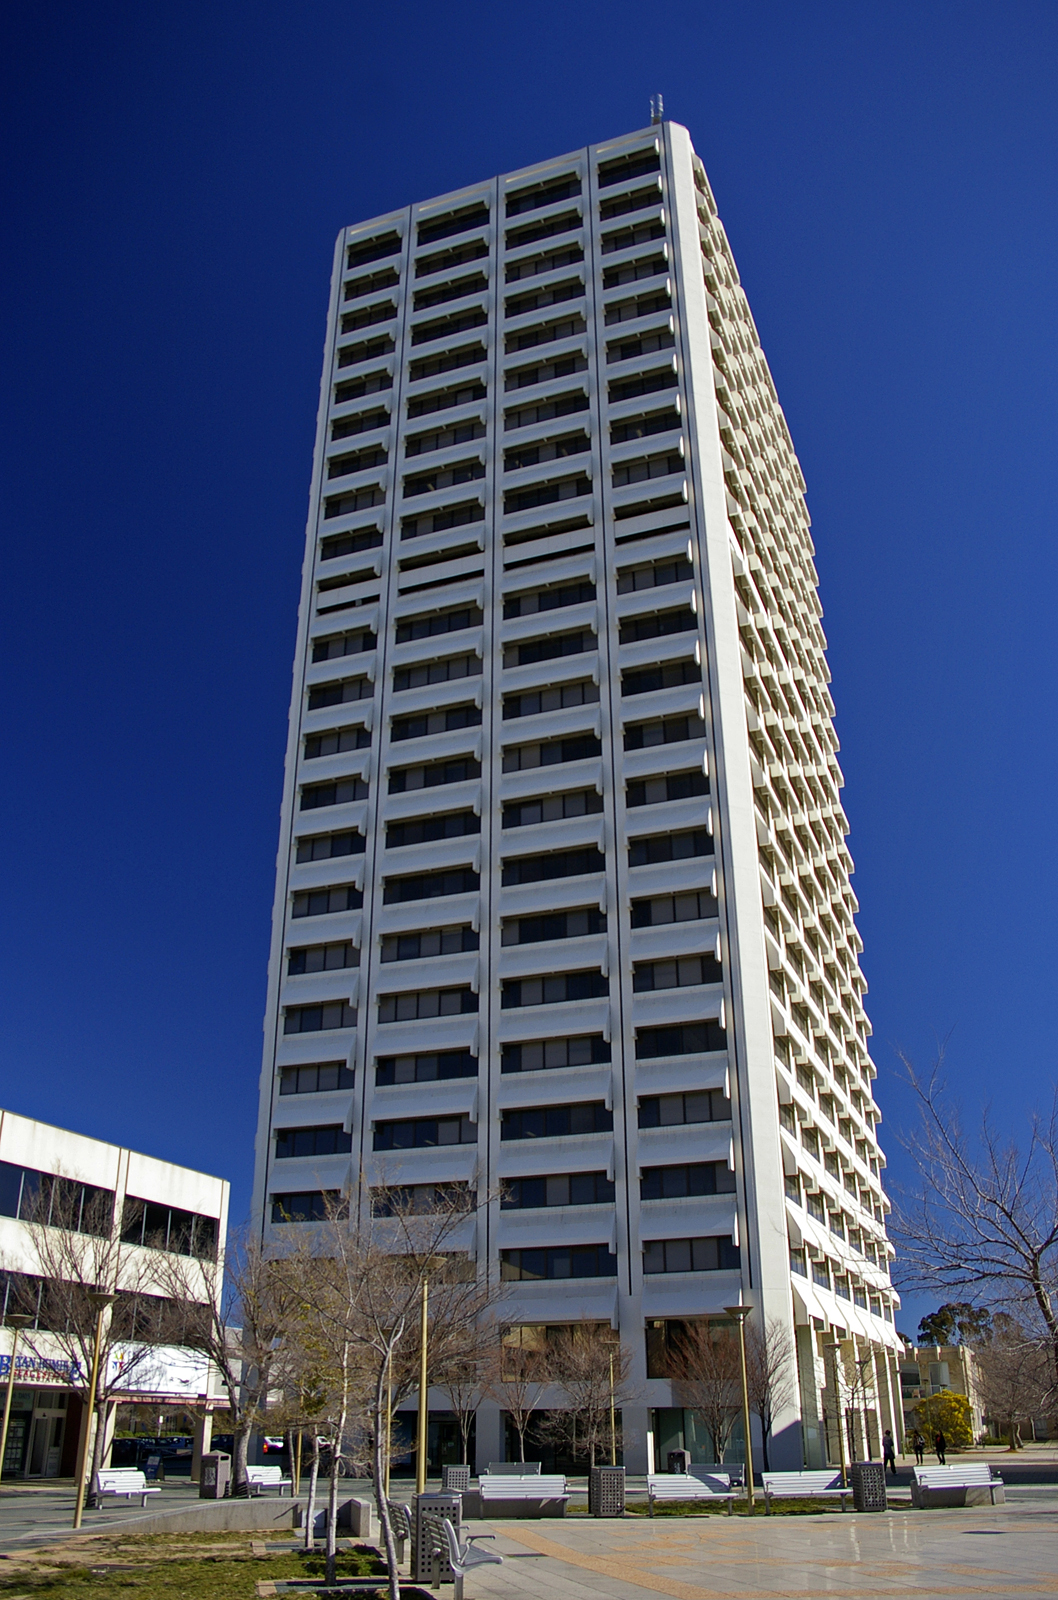 List of tallest buildings in Canberra - Wikipedia